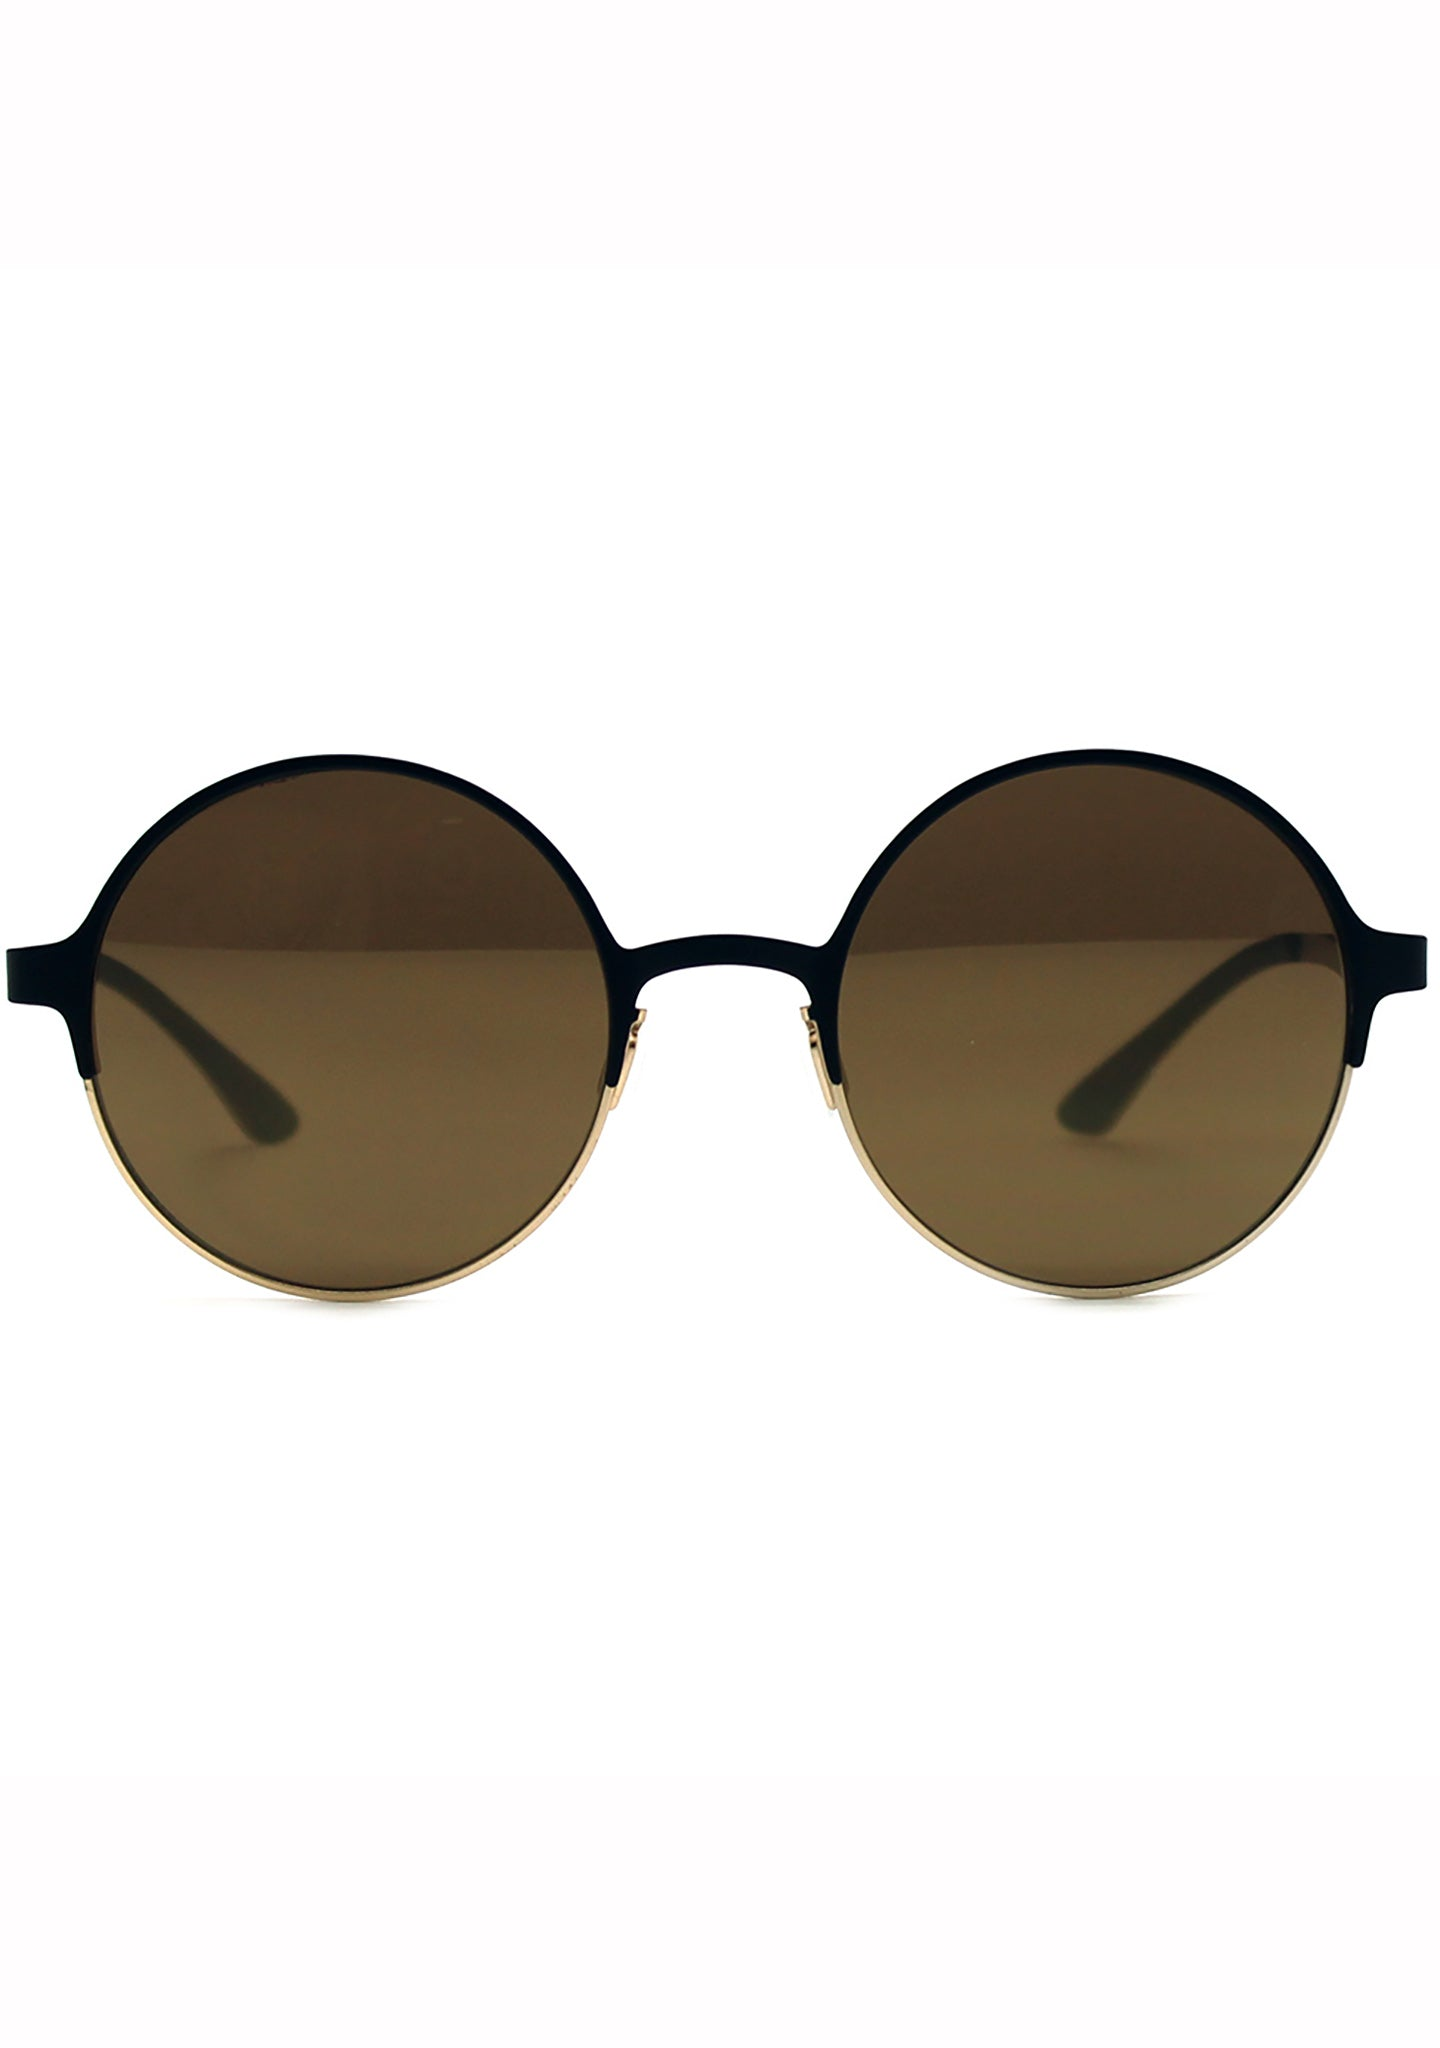 Adidas Originals Round Mirror Metal Series Sunglasses in Black/Gold